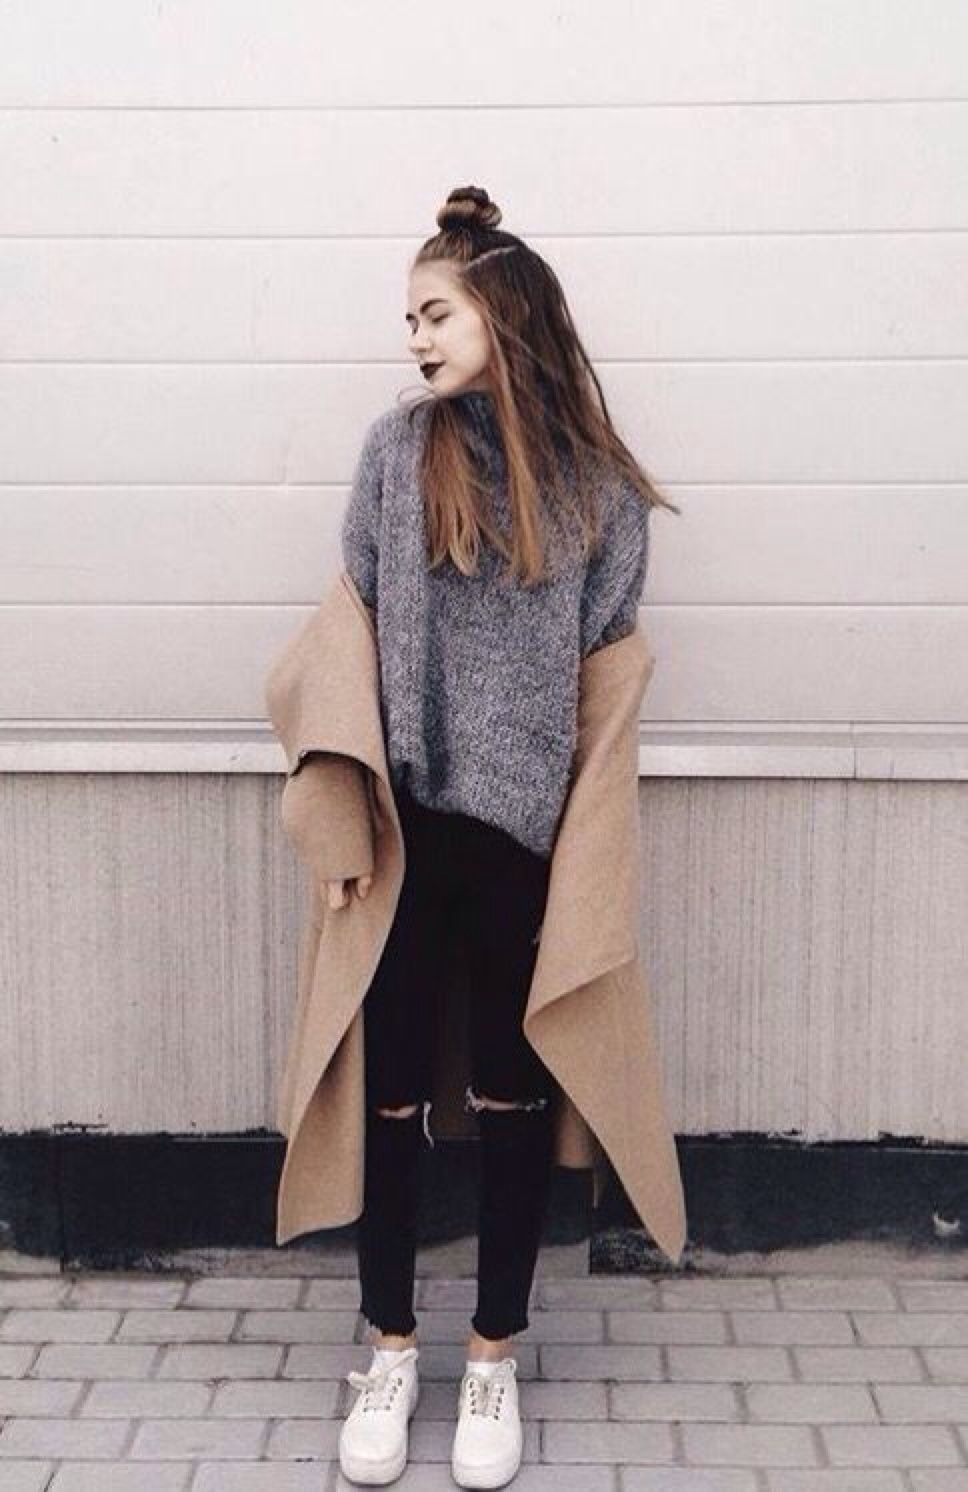 Grunge Street Outfit For Winter Pictures Photos And